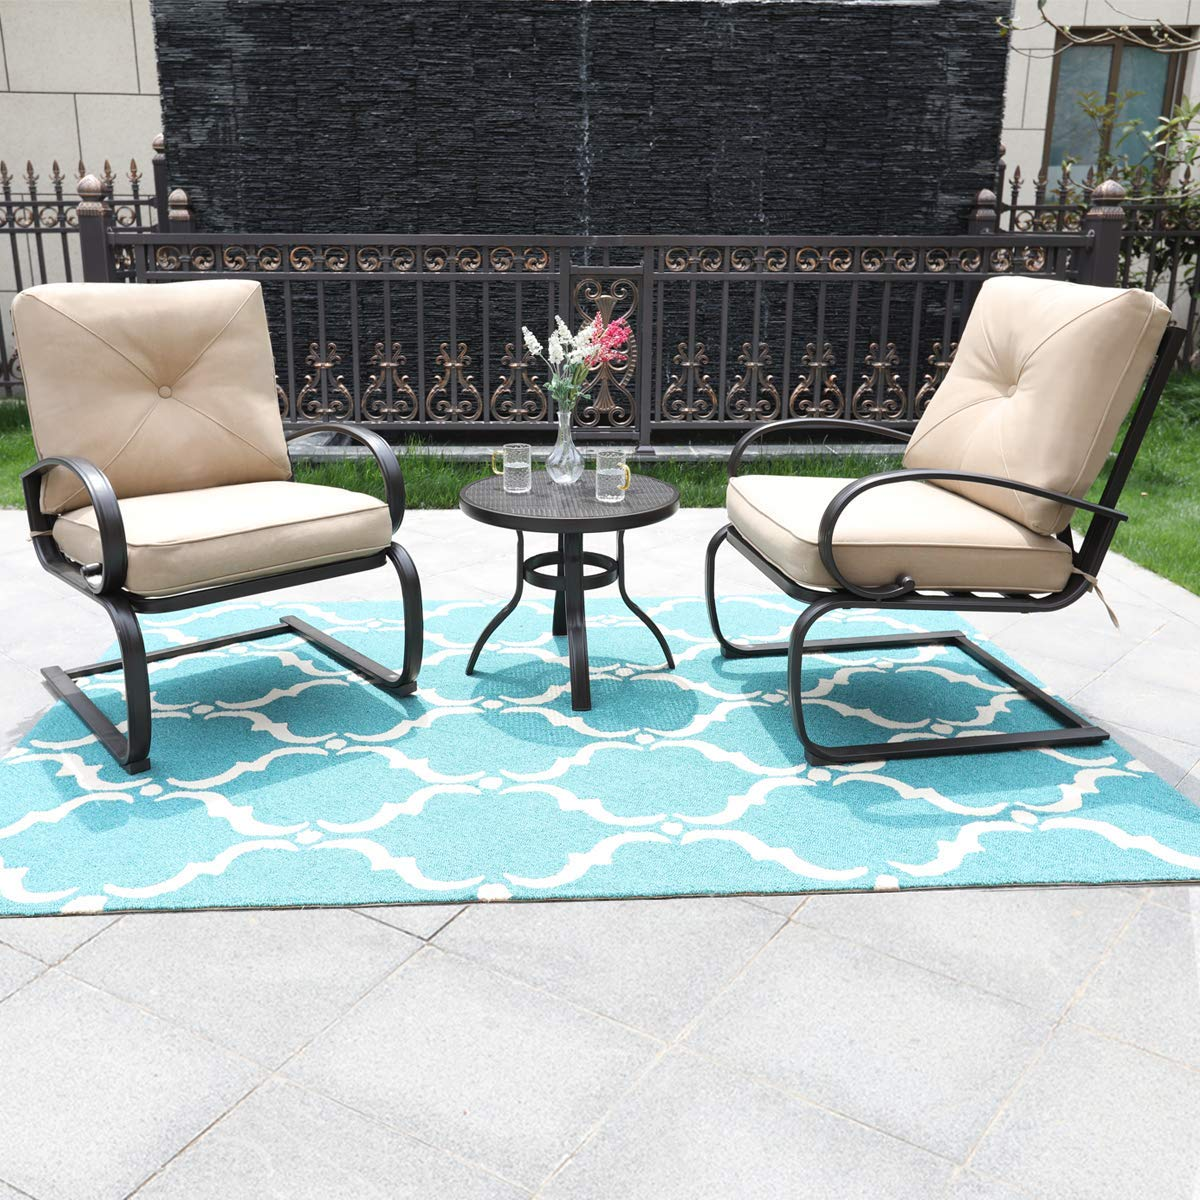 PHI VILLA Outdoor C-Spring Metal Lounge Cushioned Chairs & Table Set Beige